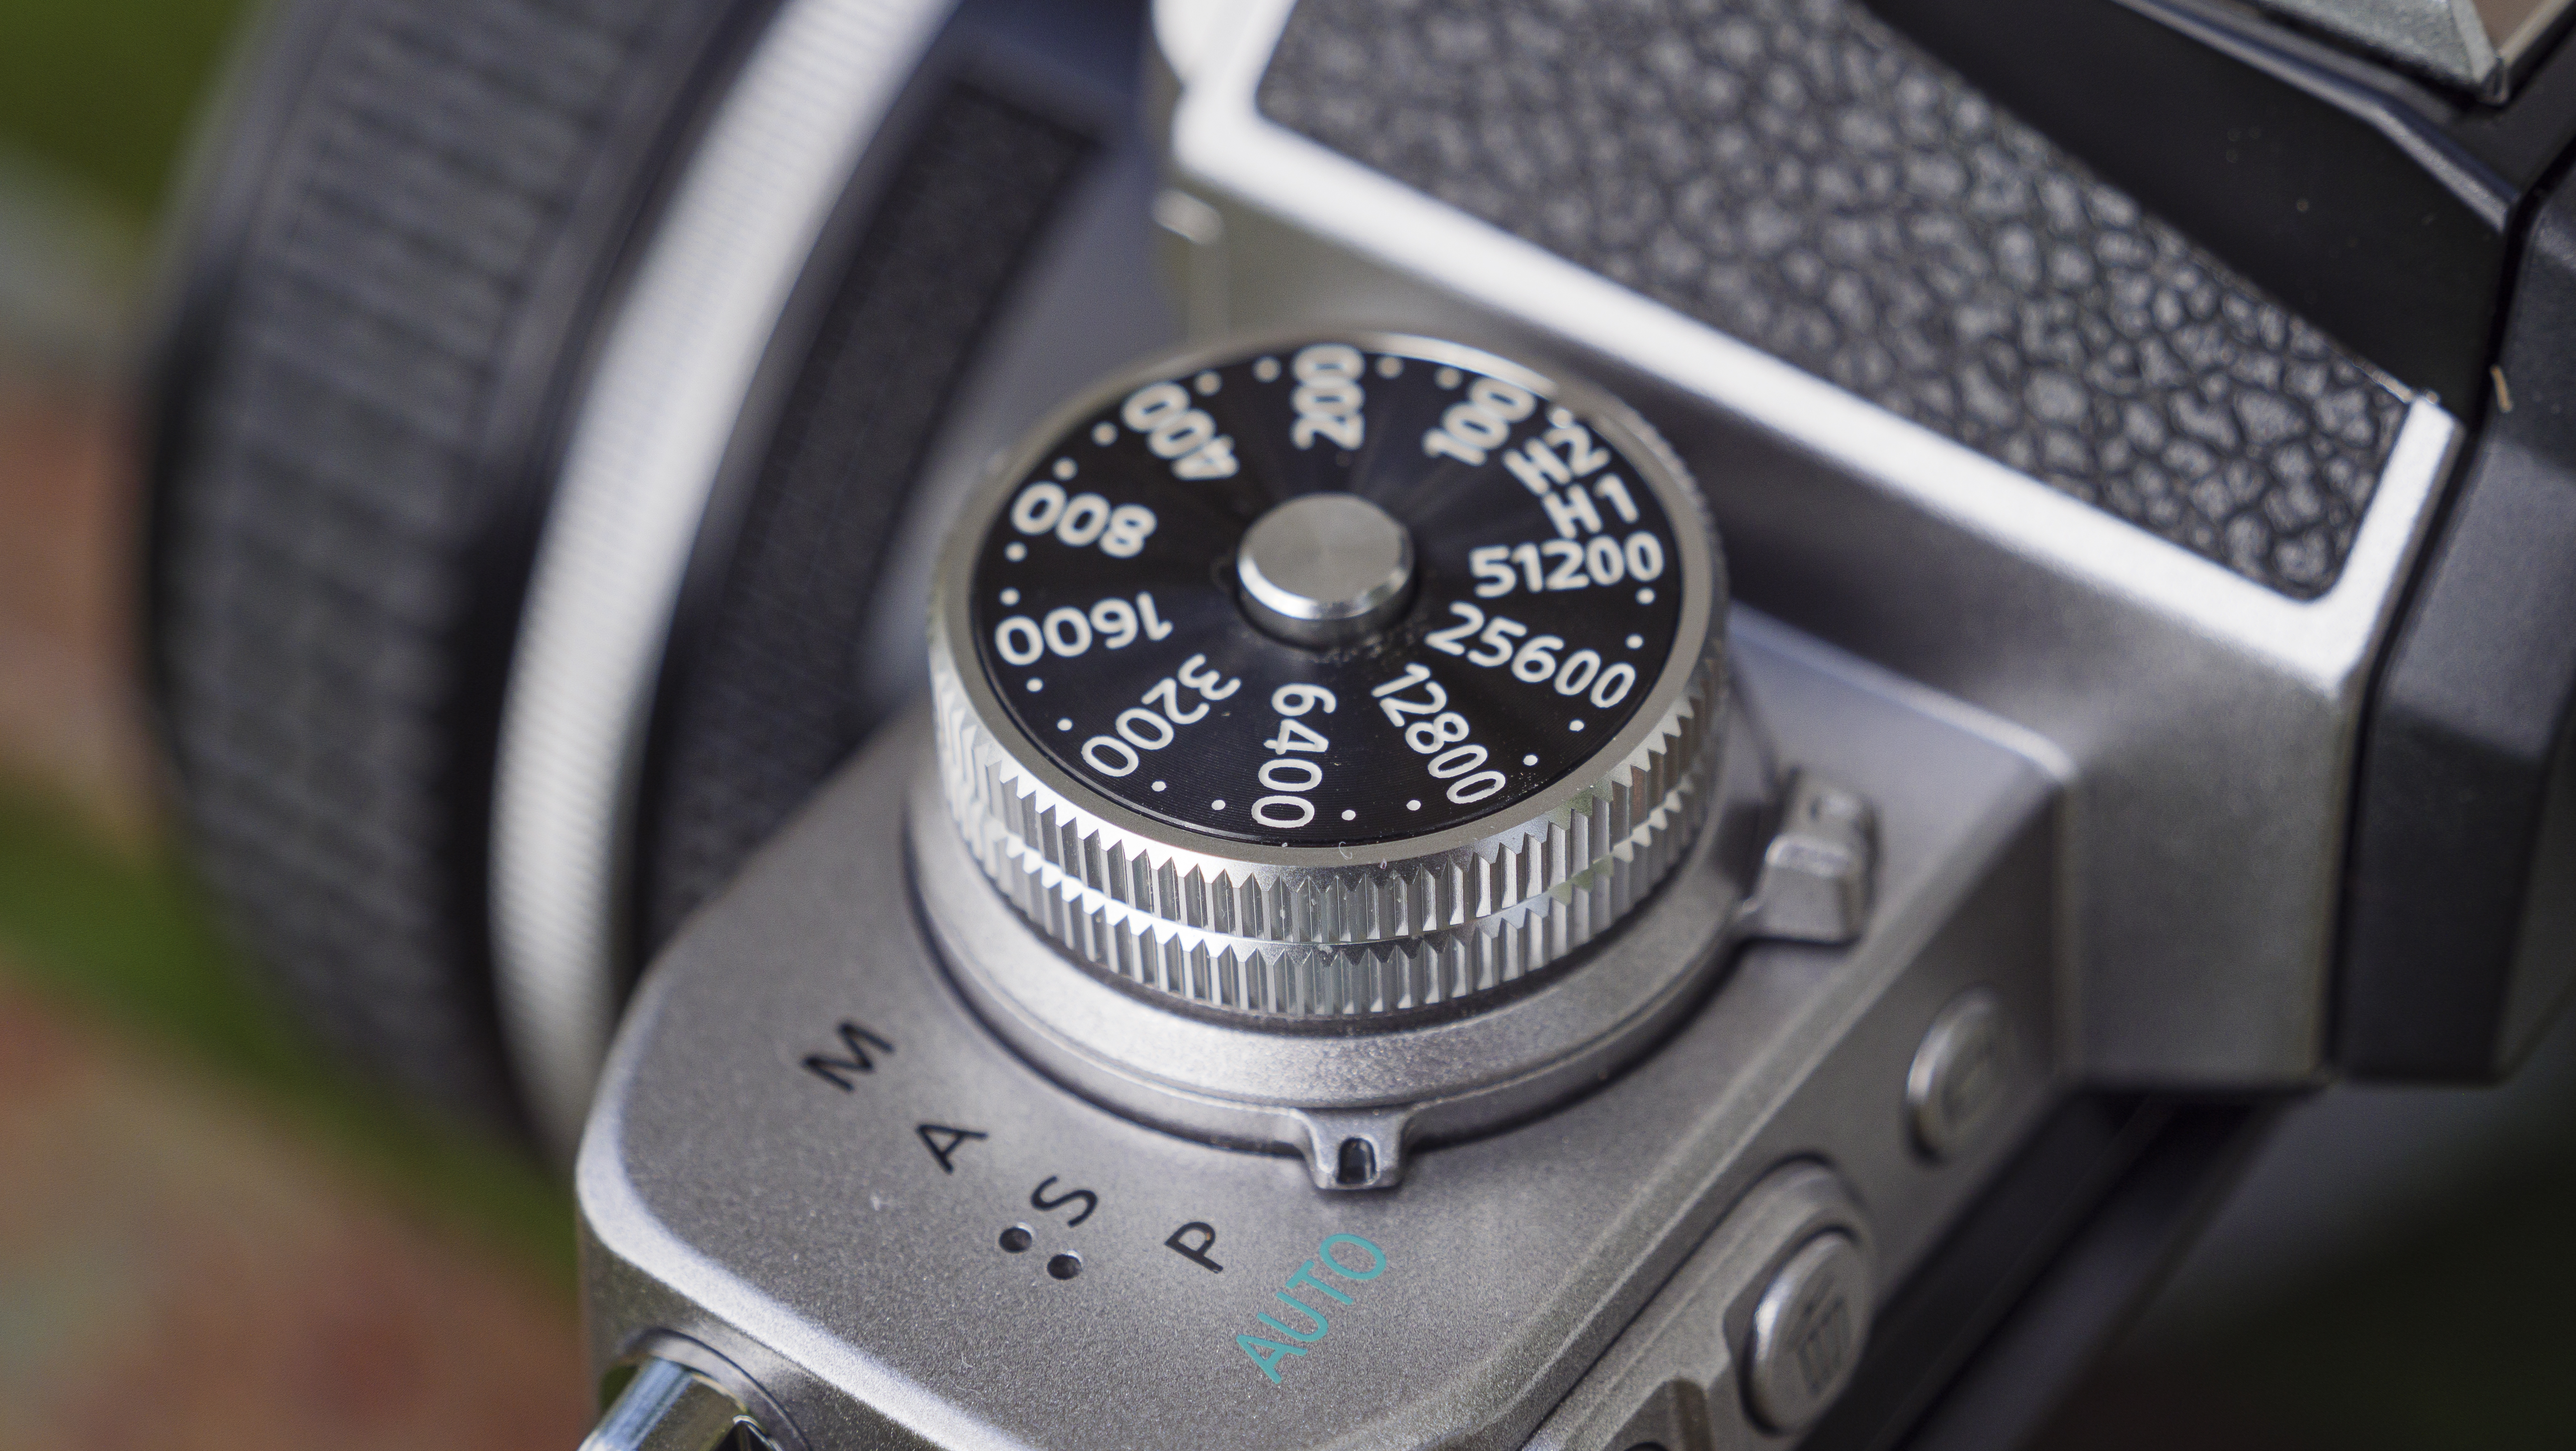 The ISO dial of the Nikon Z fc